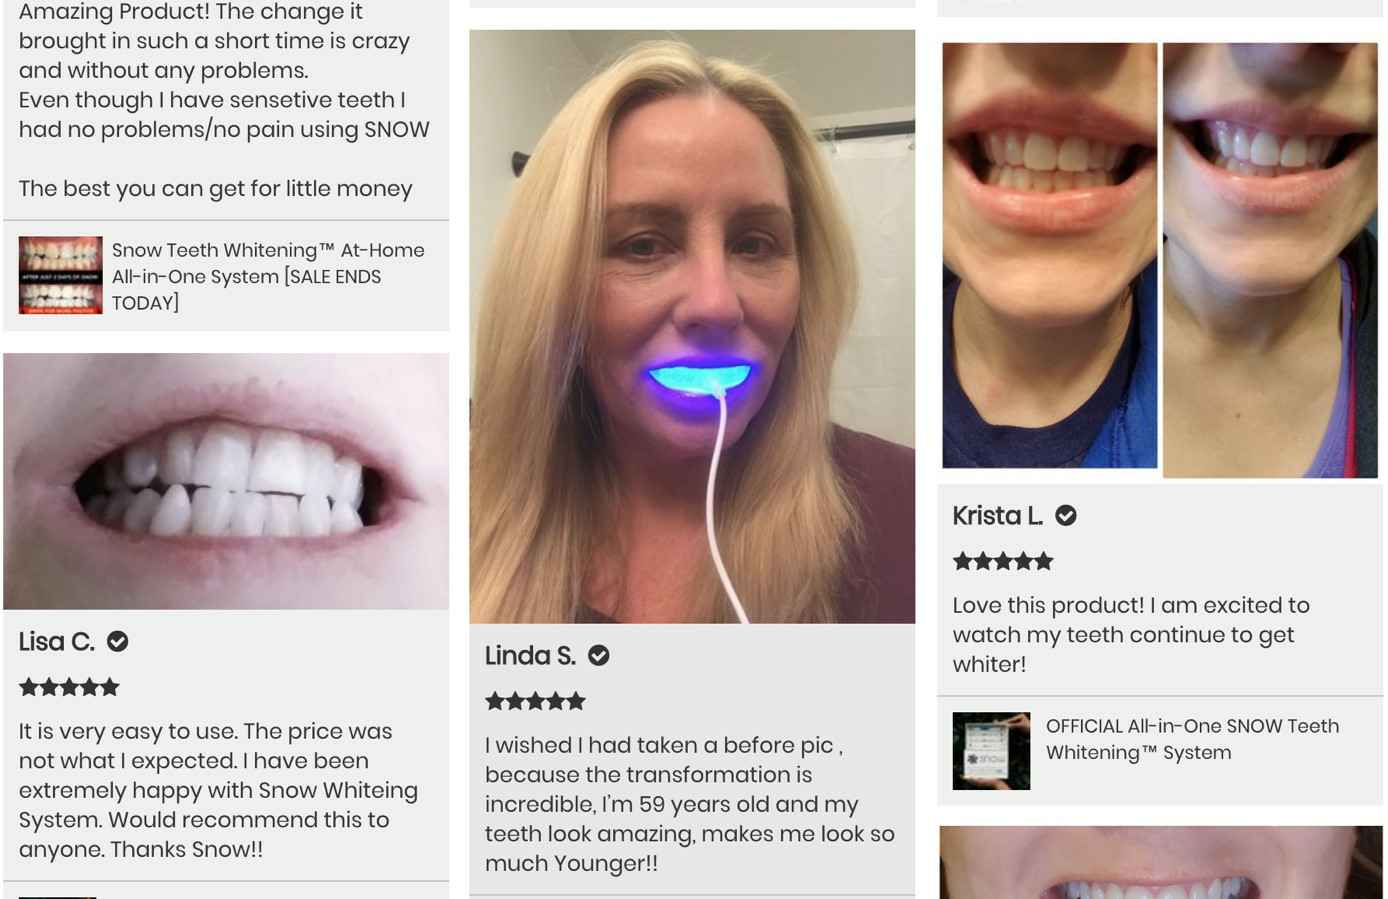 Customer Service Email Address Snow Teeth Whitening